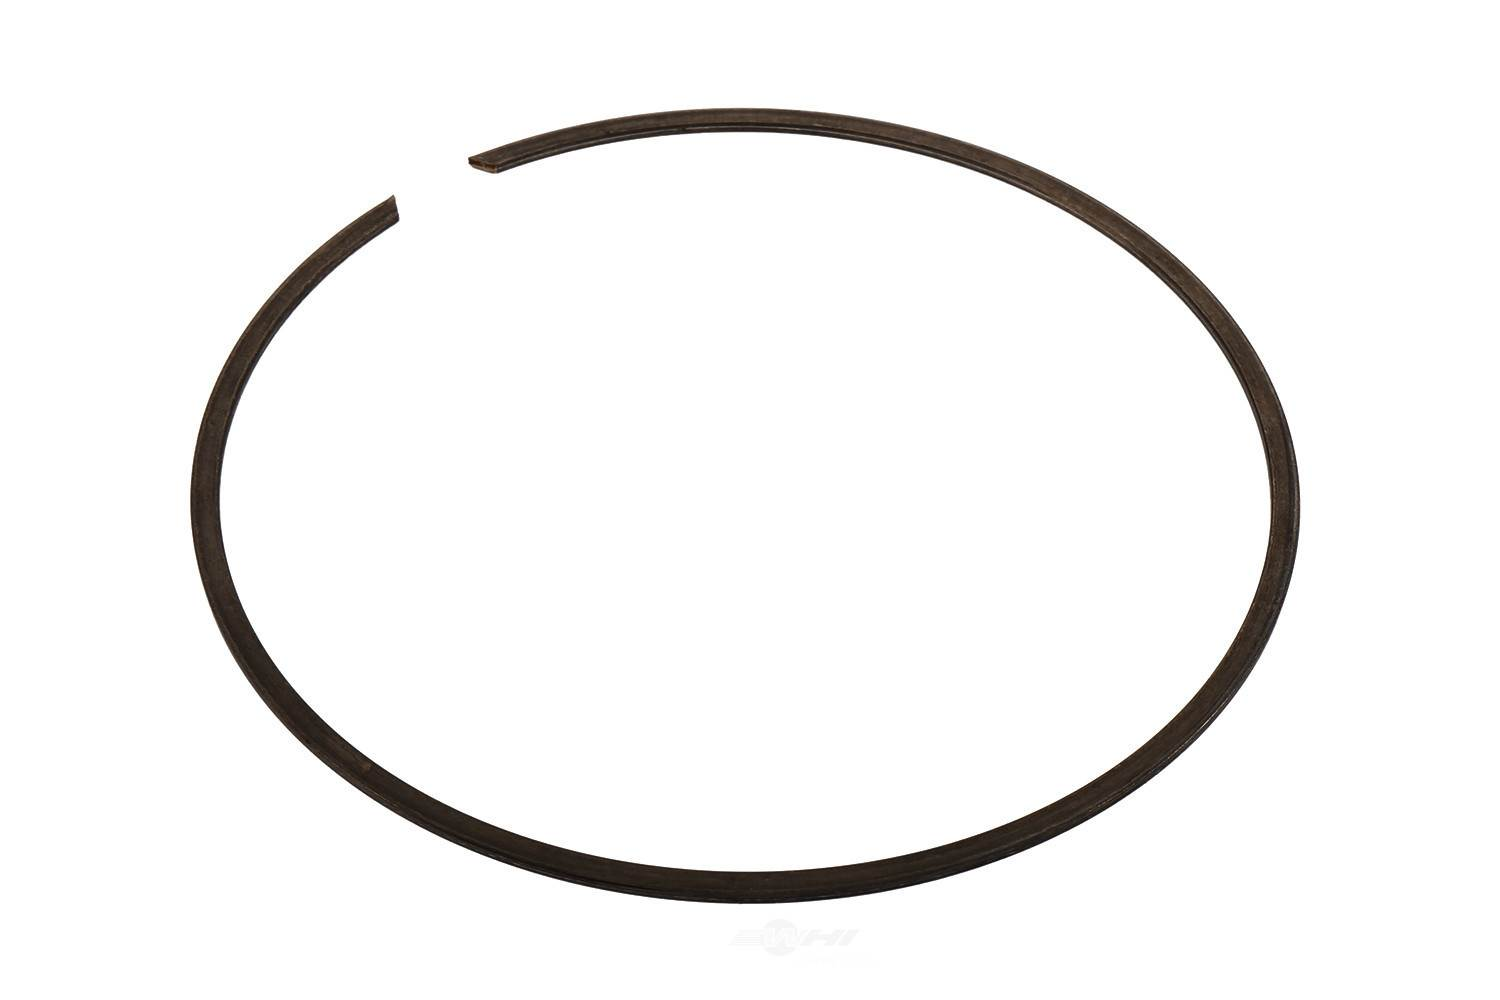 ACDELCO GM ORIGINAL EQUIPMENT - Automatic Transmission Speed Sensor Reluctor Ring - DCB 24232557